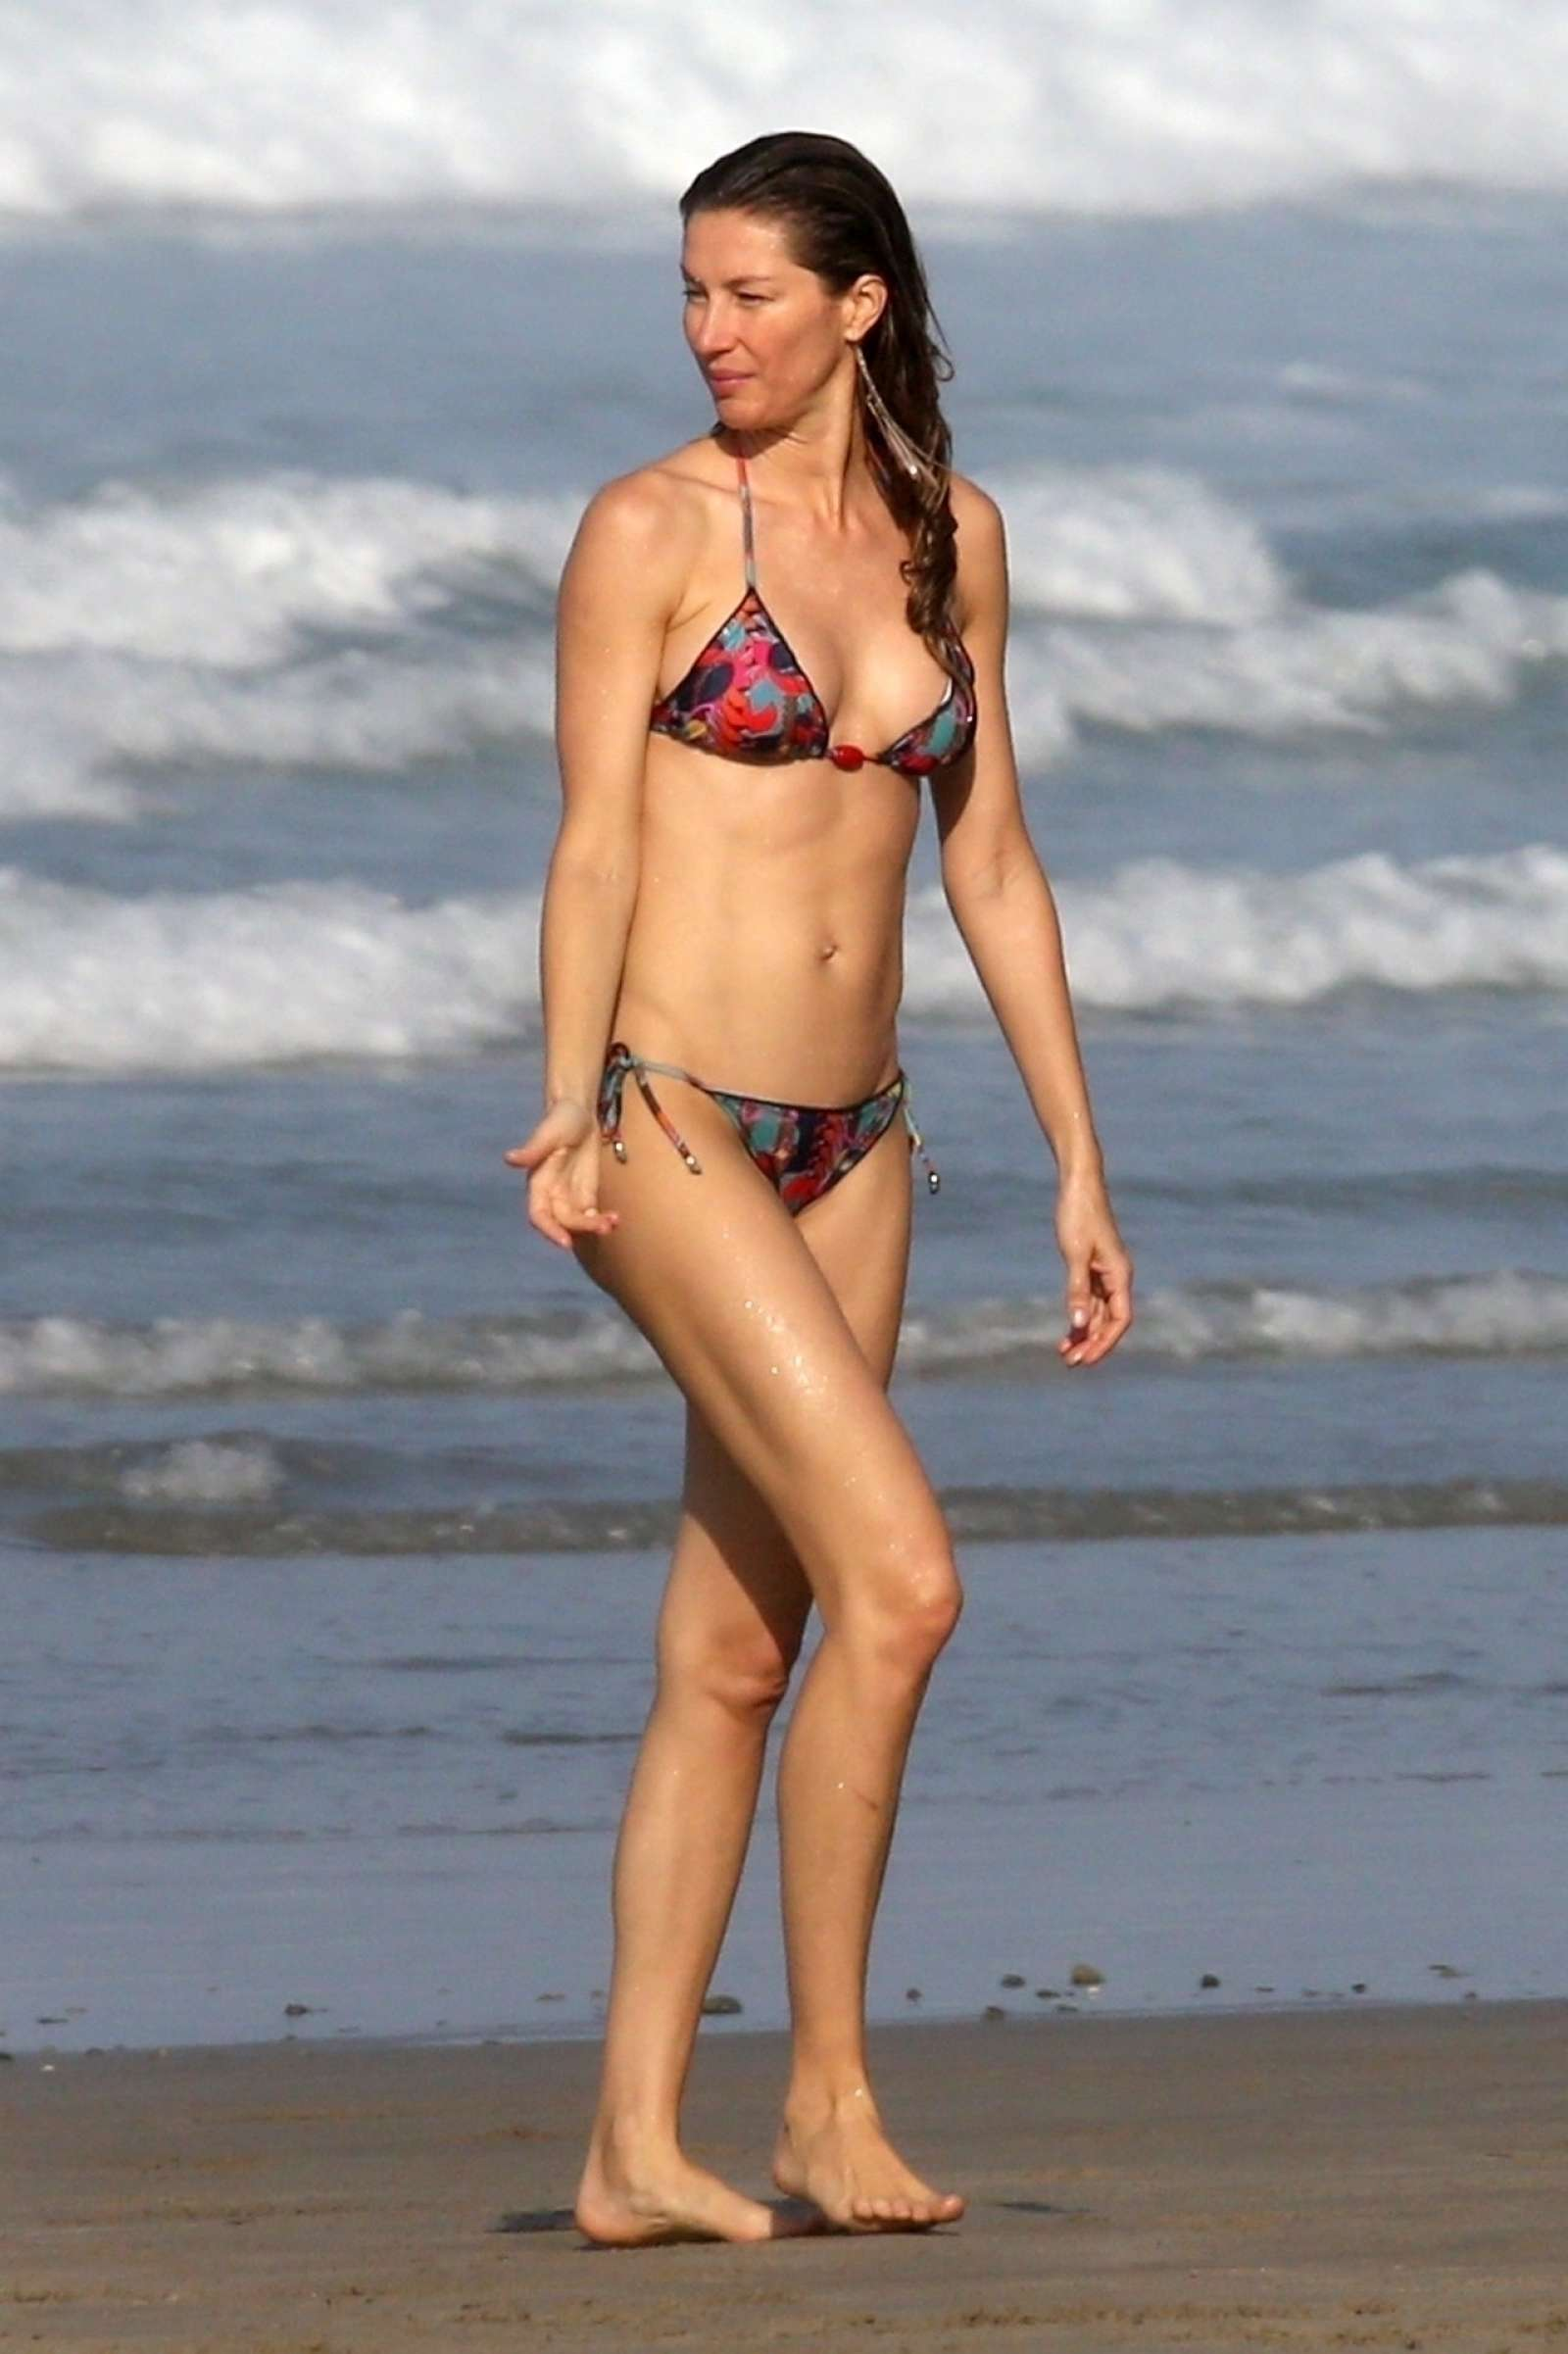 Gisele Bundchen in Bikini at the Beach in Costa Rica